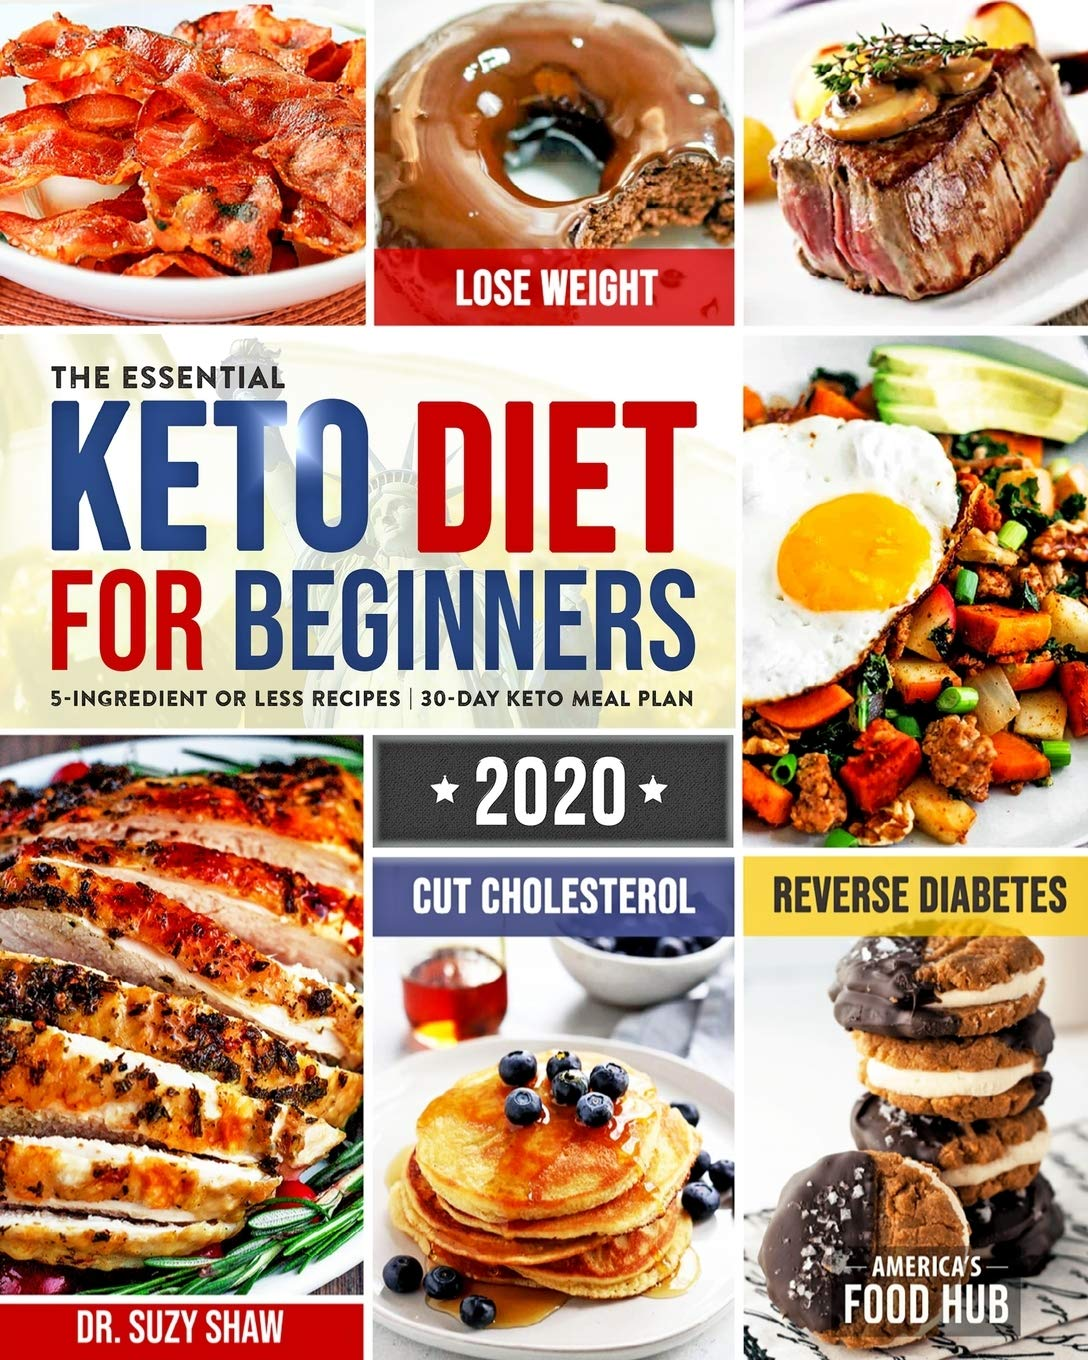 The Essential Keto Diet for Beginners #2020: 5-Ingredient Affordable, Quick & Easy Ketogenic Recipes   Lose Weight, Cut Cholesterol & Reverse Diabetes   30-Day Keto Meal Plan pdf epub